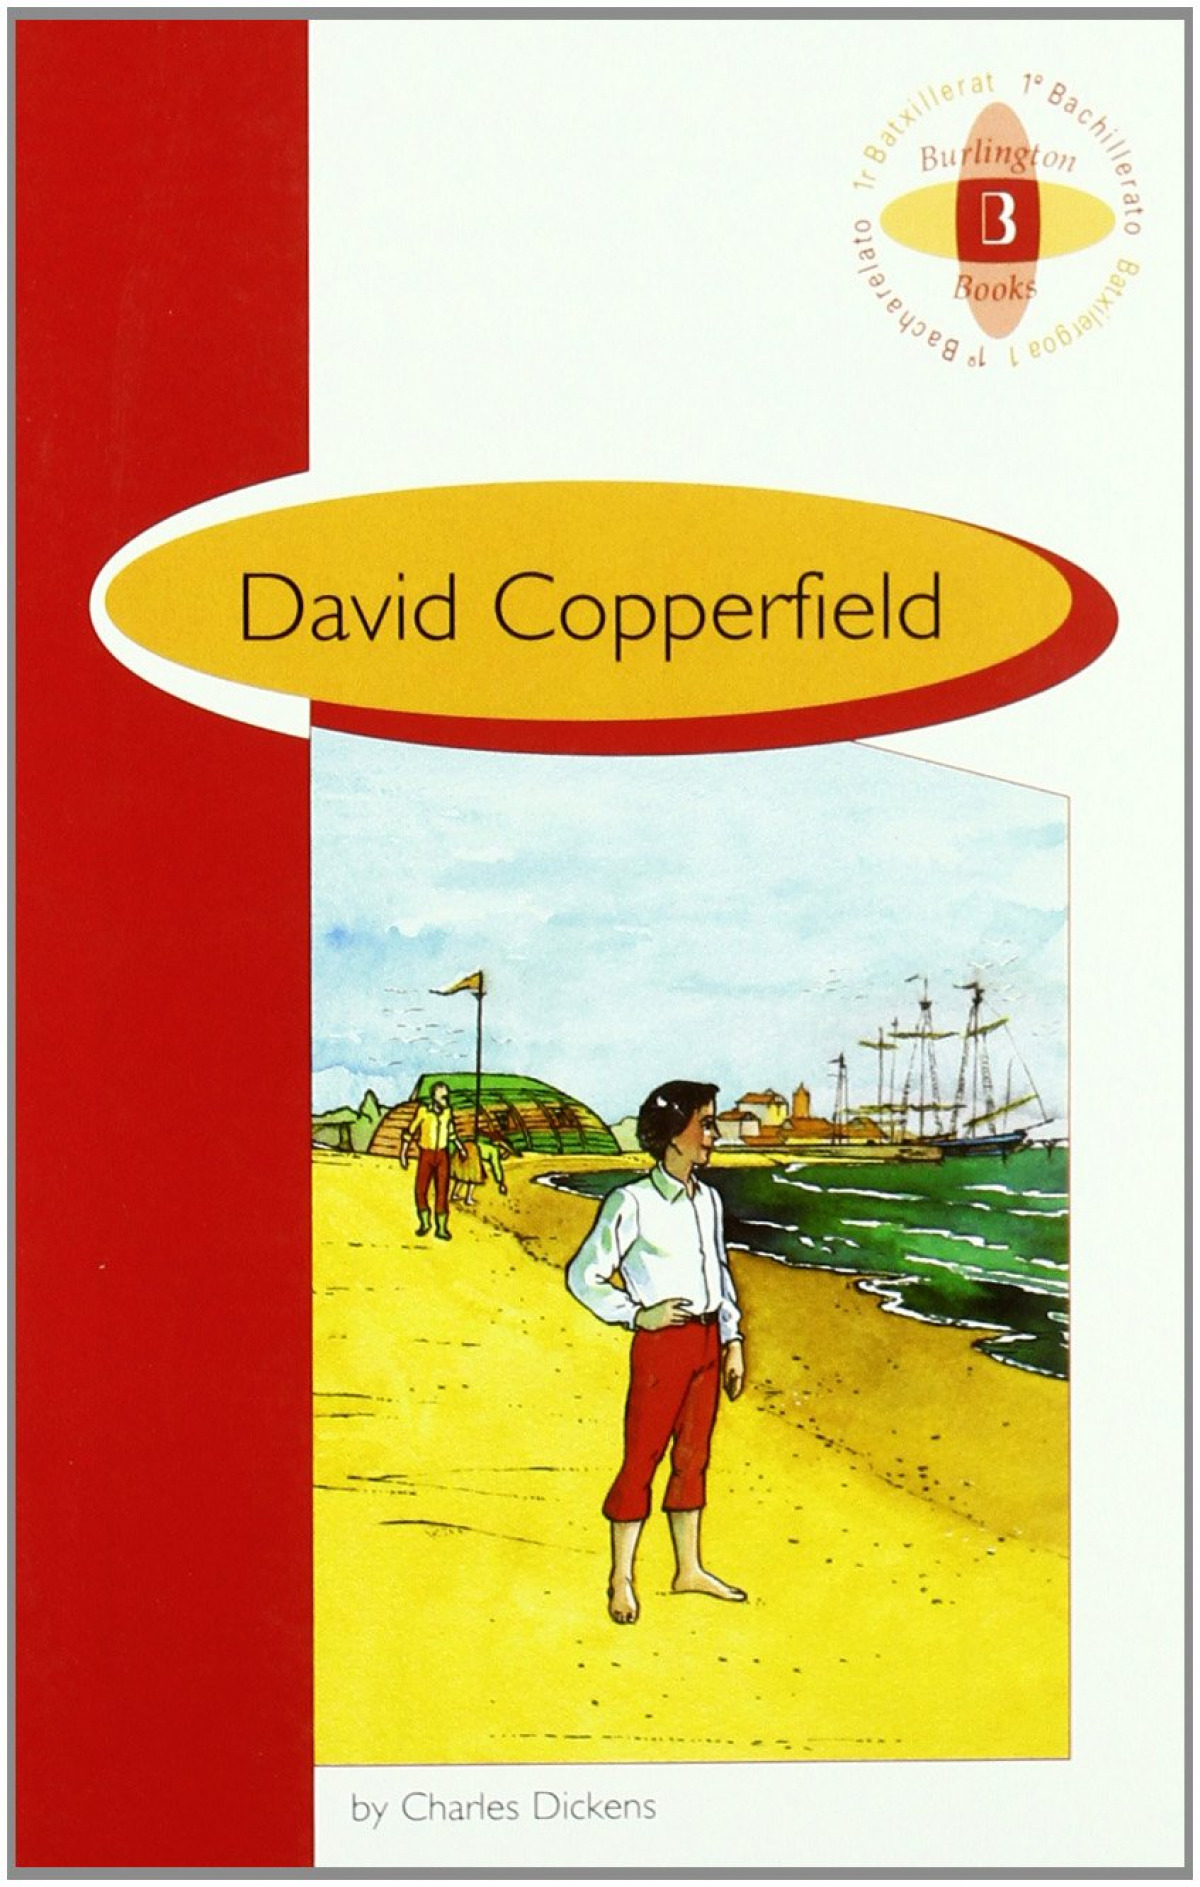 David copperfield bi07 - Dickens Charles